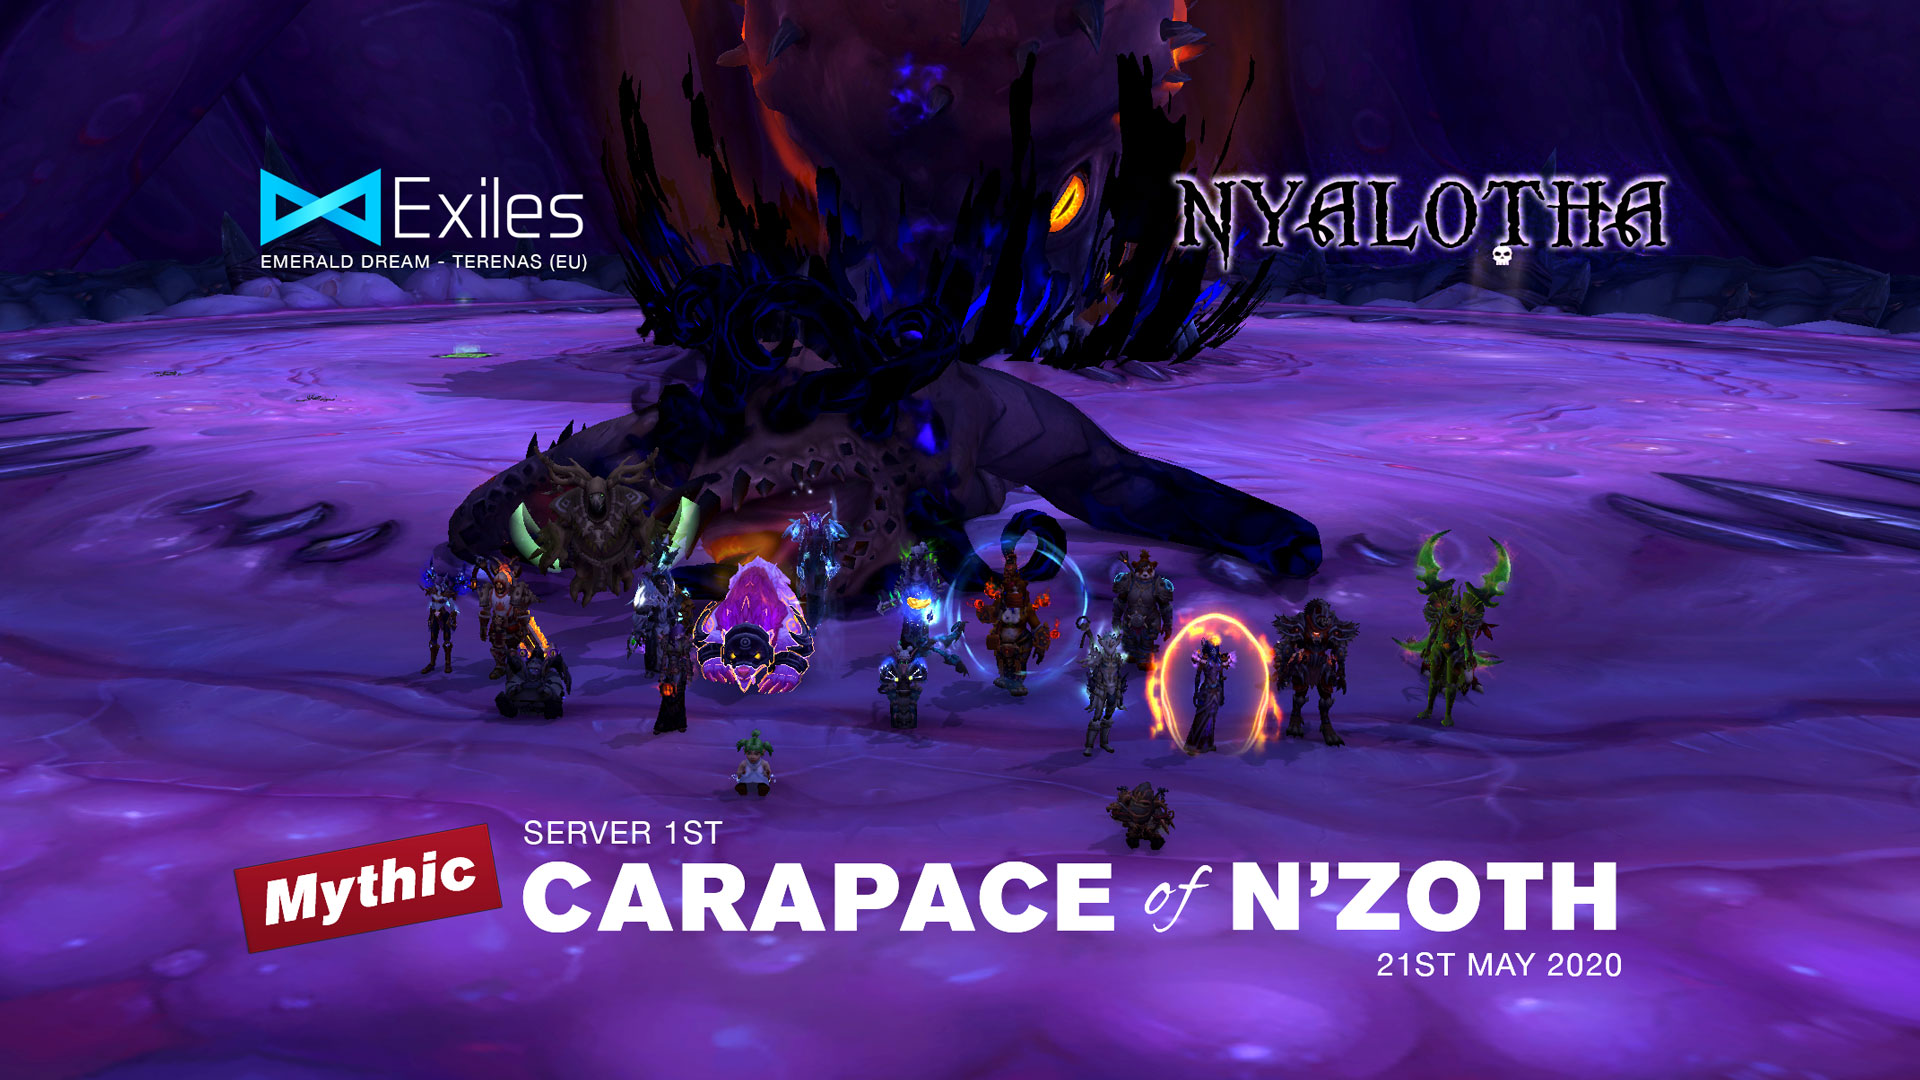 mythic carapace